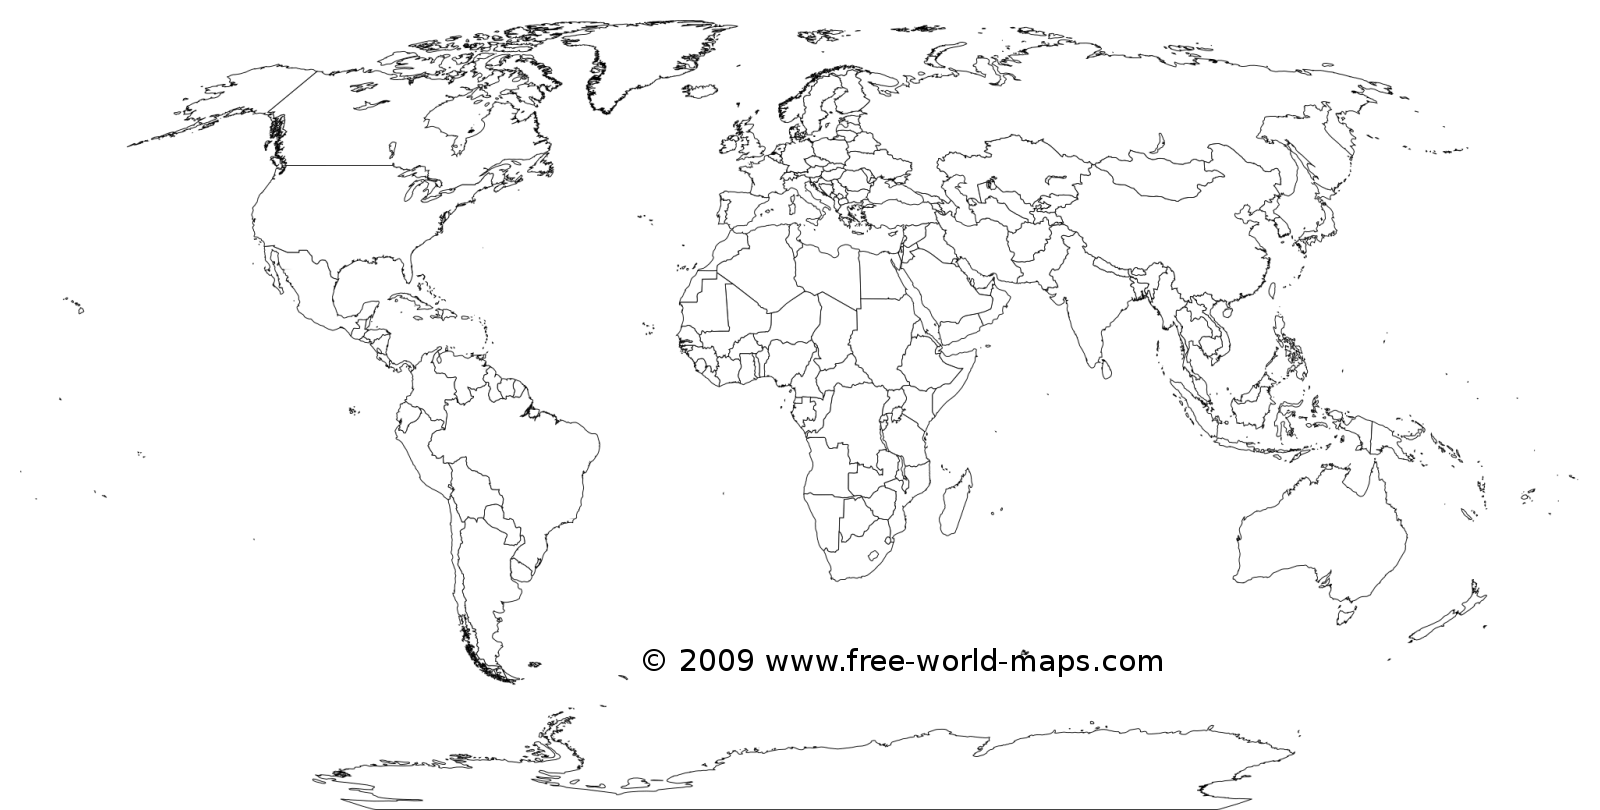 Most of the countries in the world, plus Antartica, to